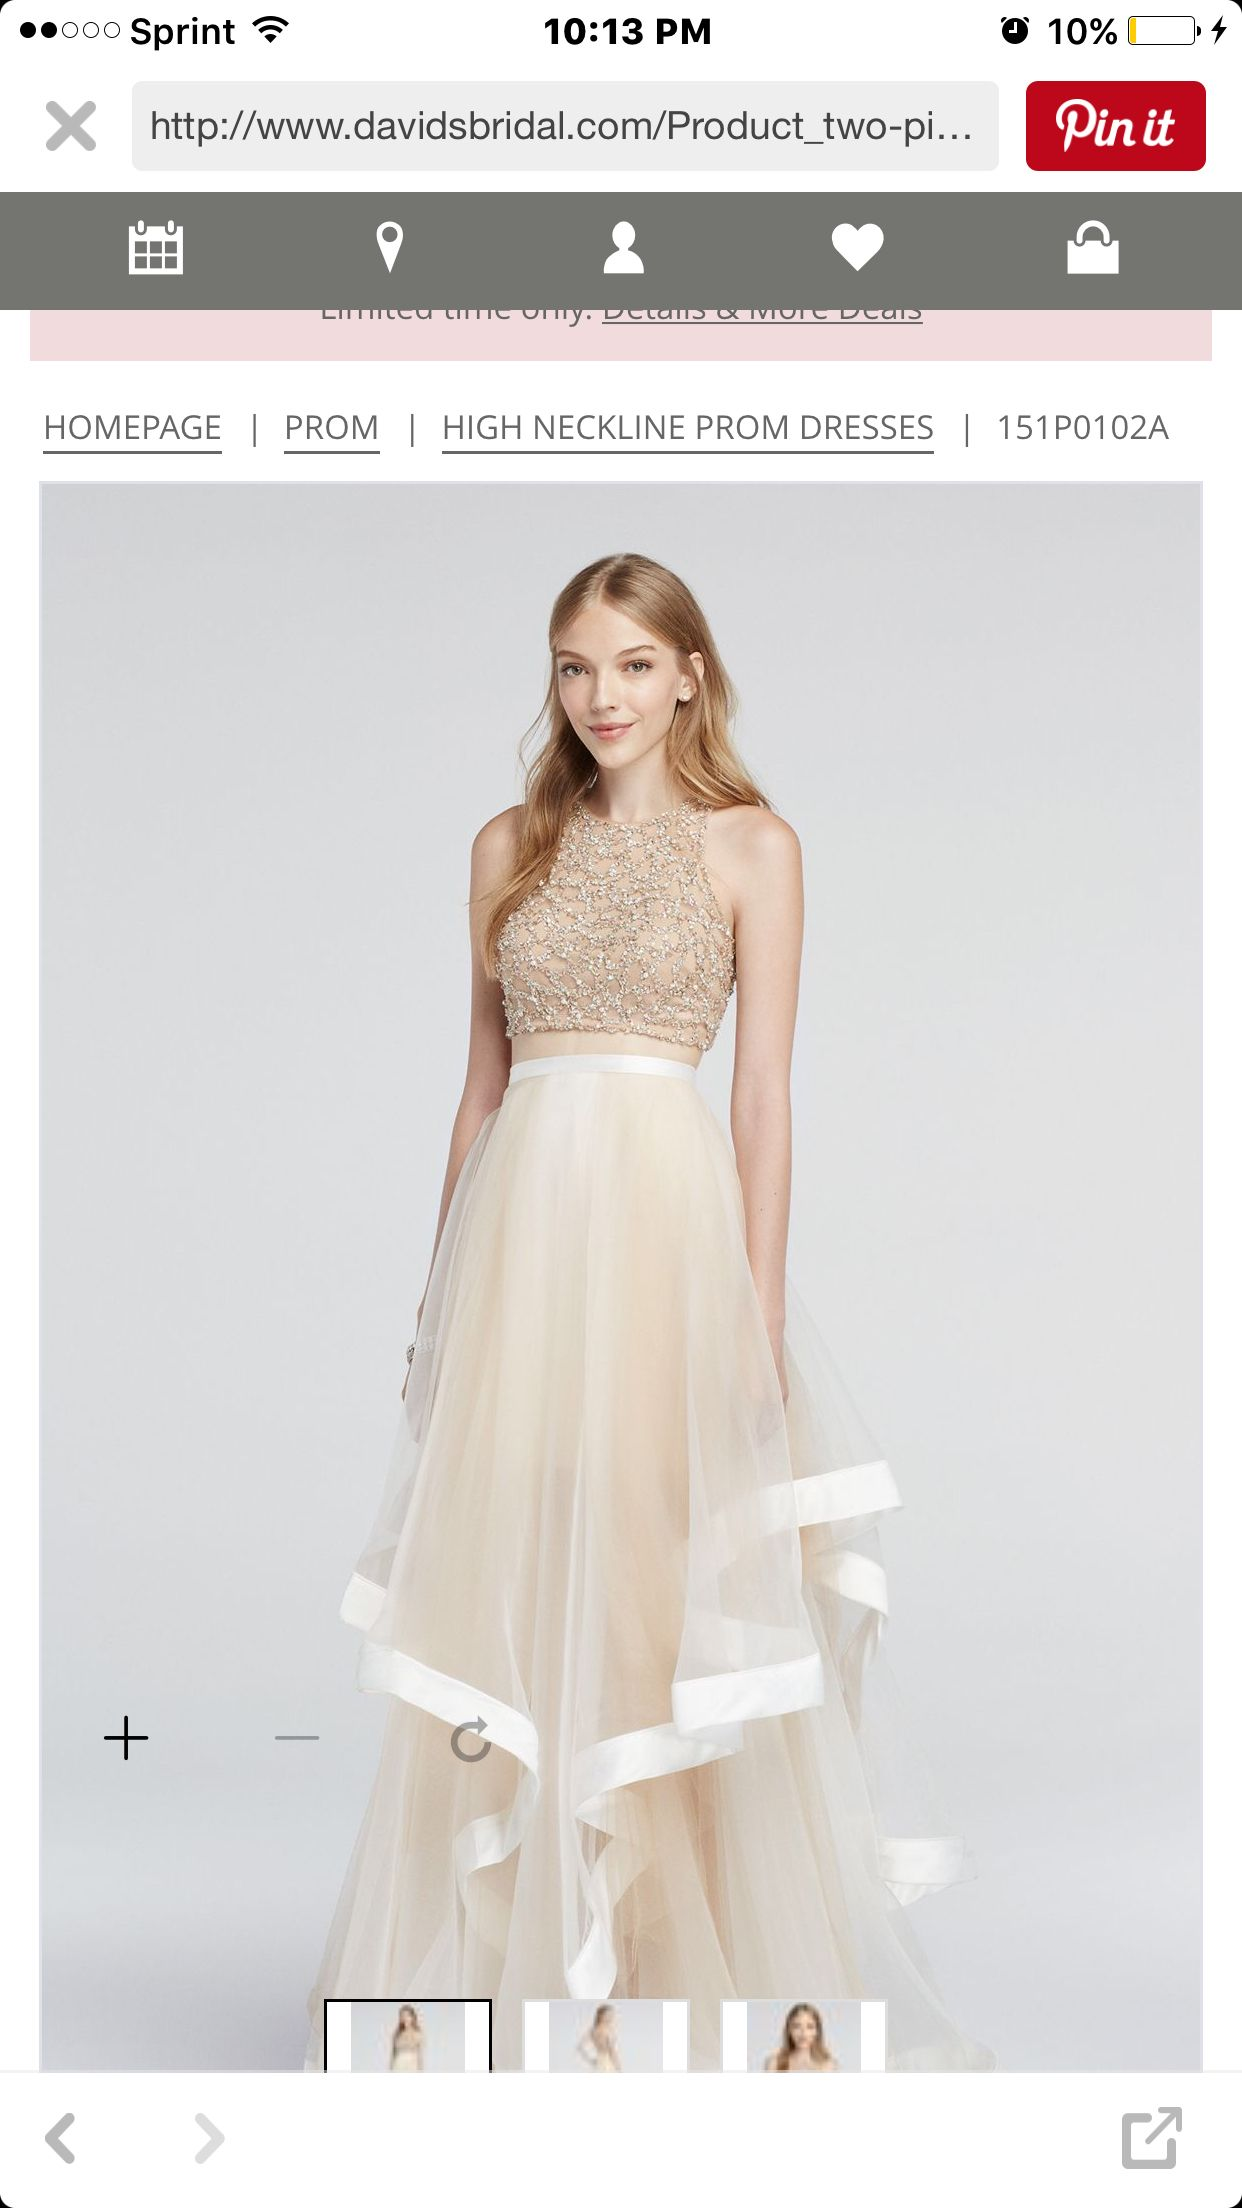 Davidus bridal in collection of prom dresses p r o m u h c